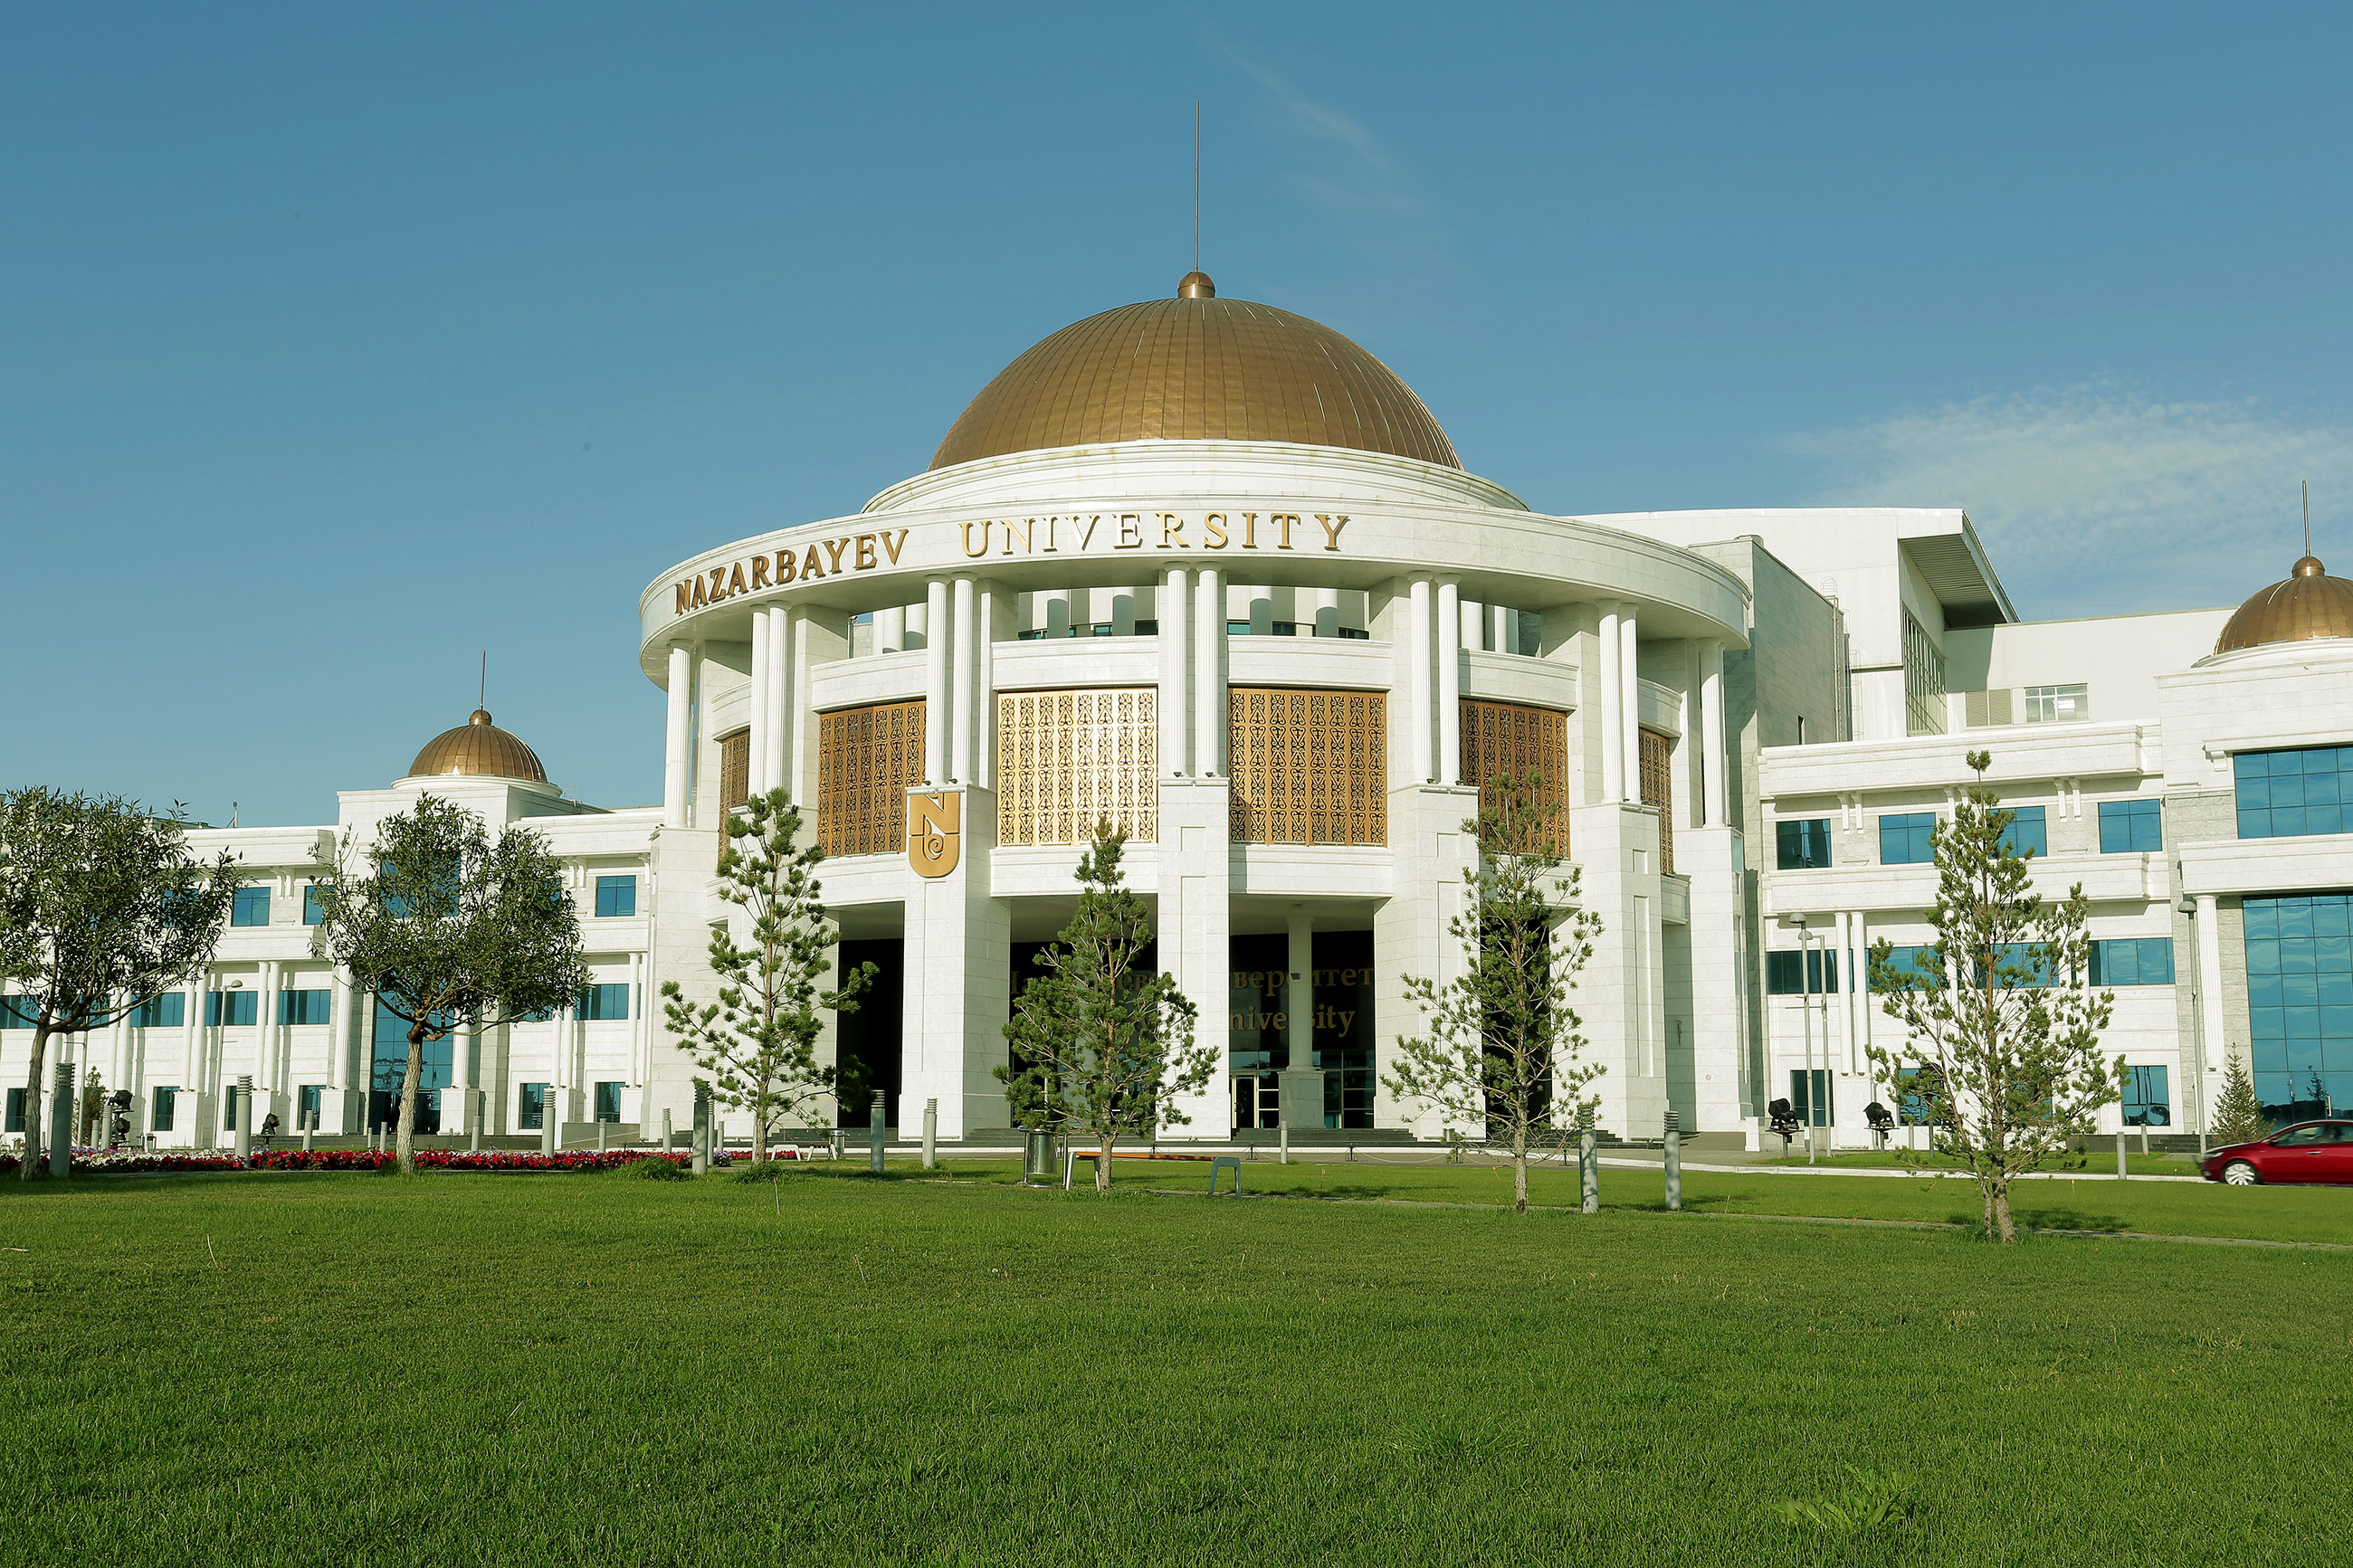 dropouts from universities in kz Dropouts 'for roles in fostering,  colleges anrl universities  kzlcclljhj:: x4c4iljii_  '   ').